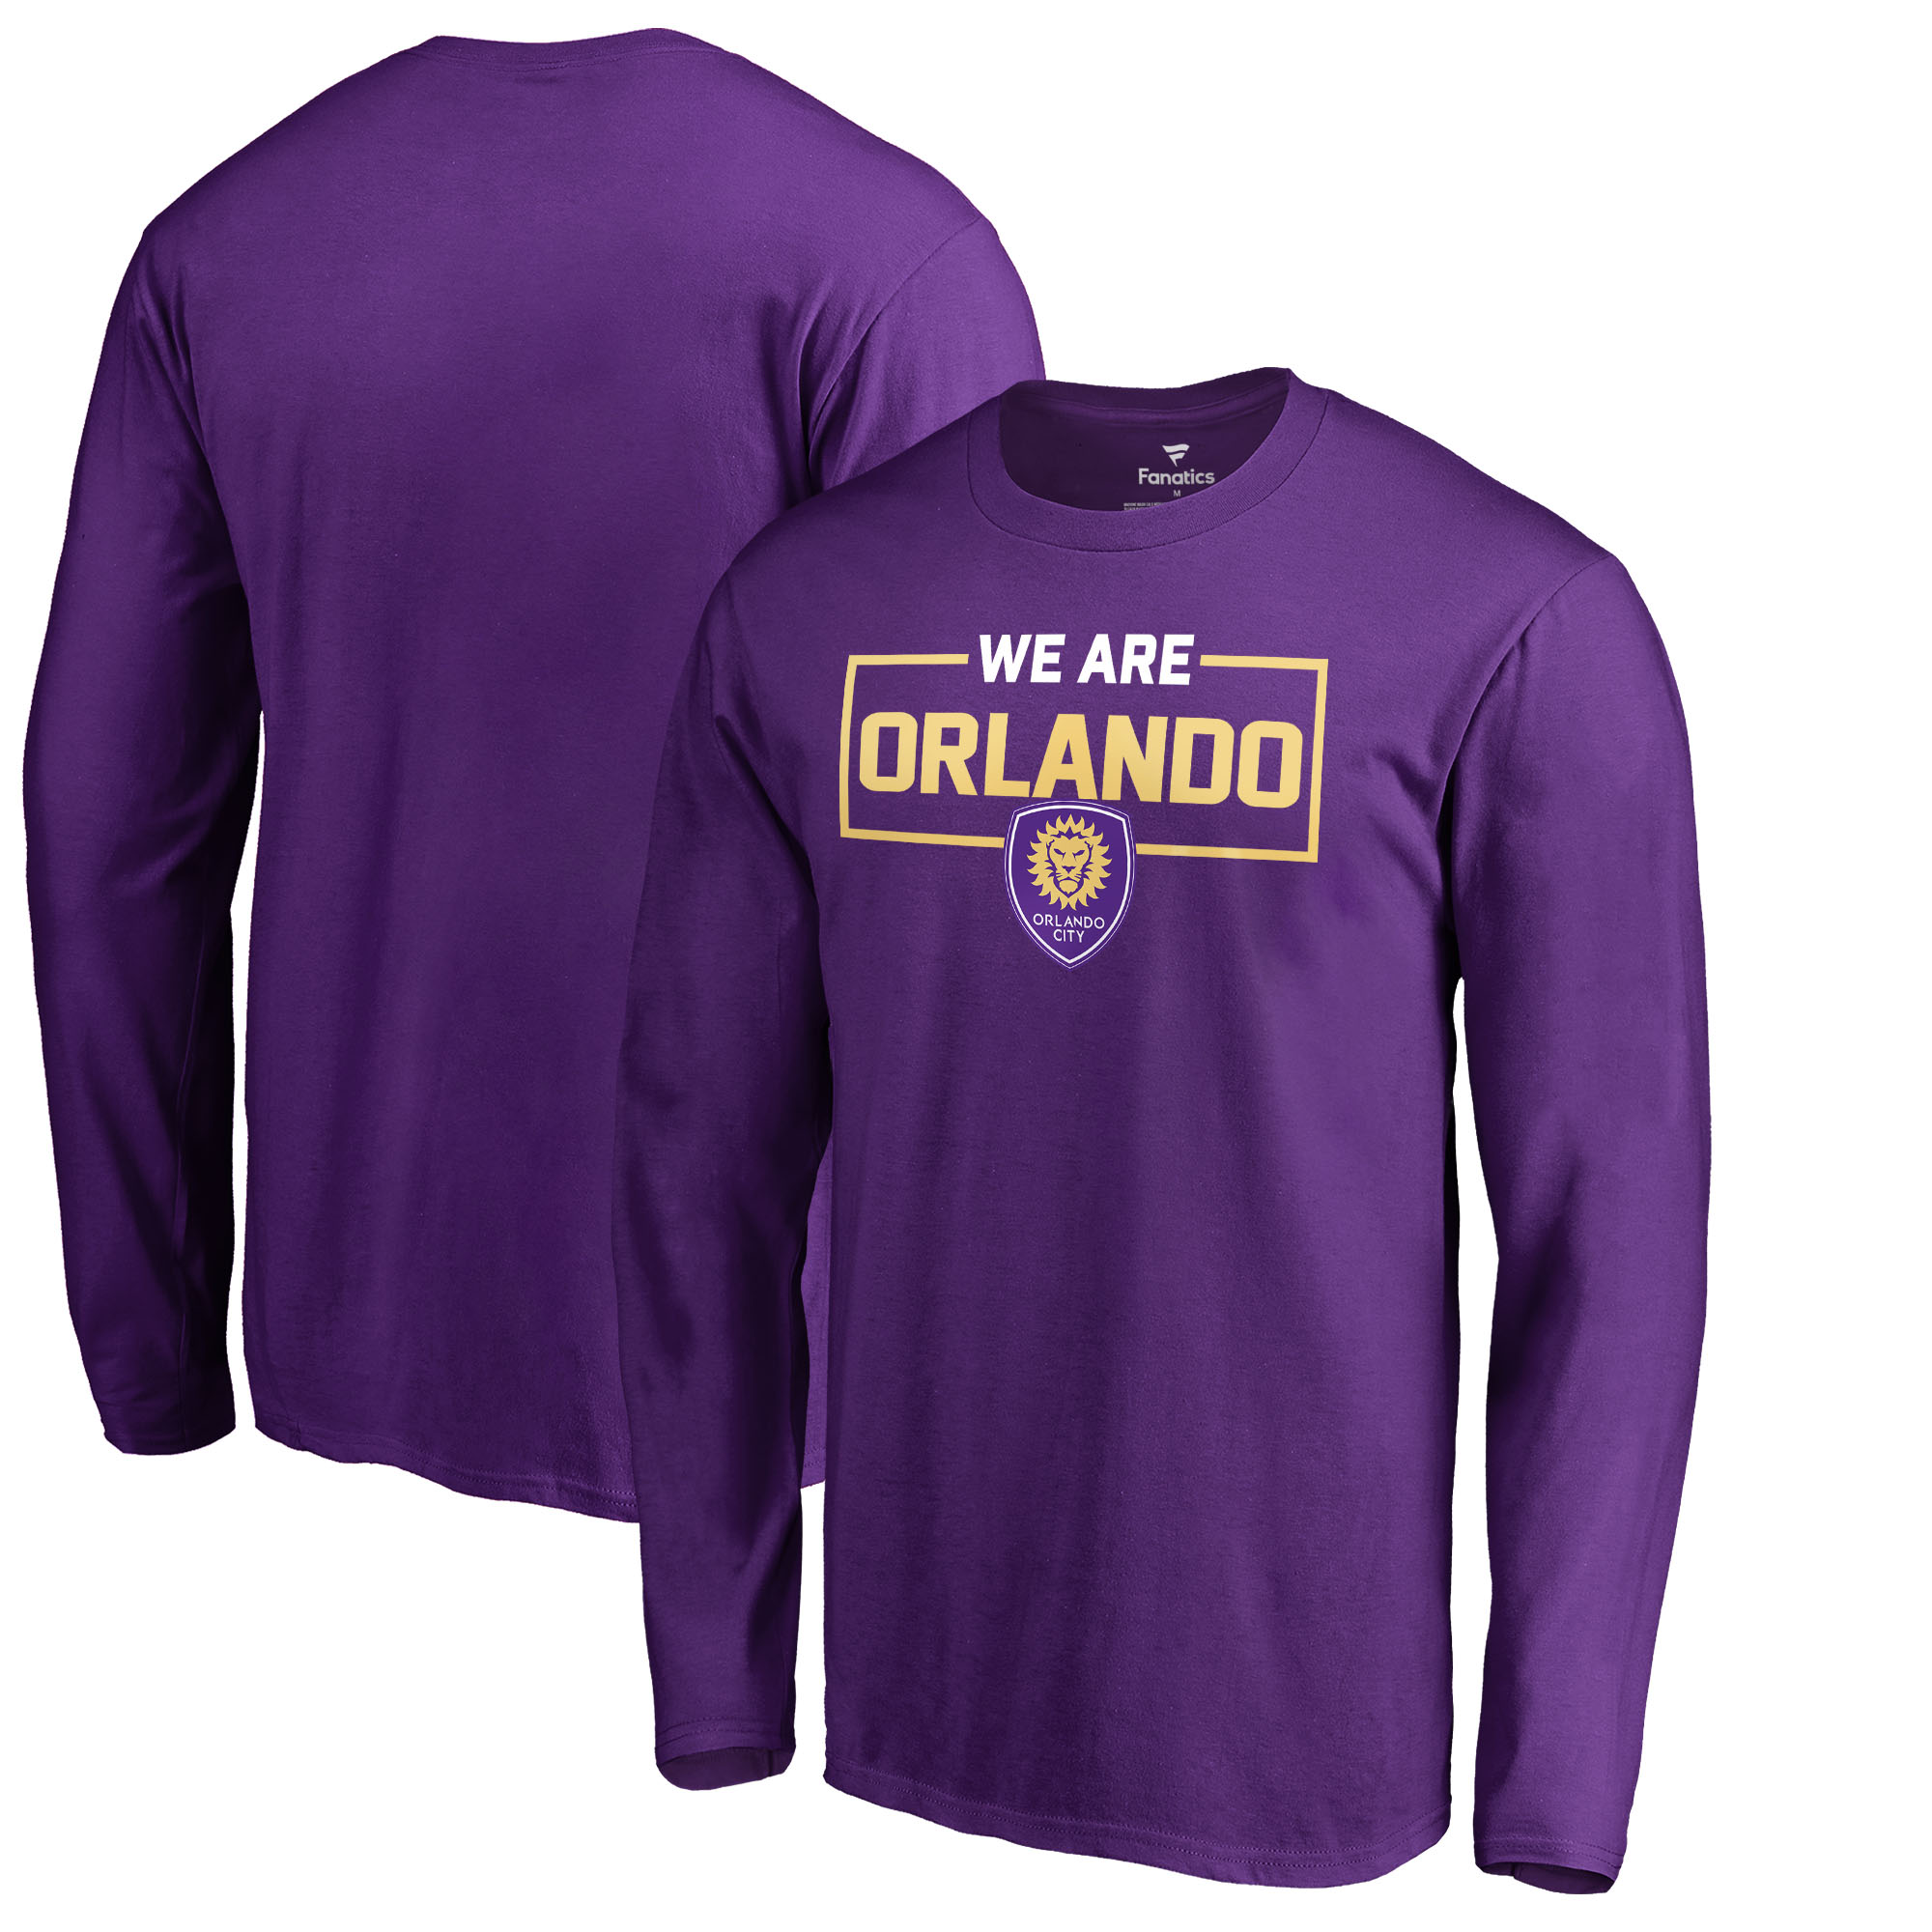 Orlando City SC Fanatics Branded We Are Long Sleeve T-Shirt - Purple